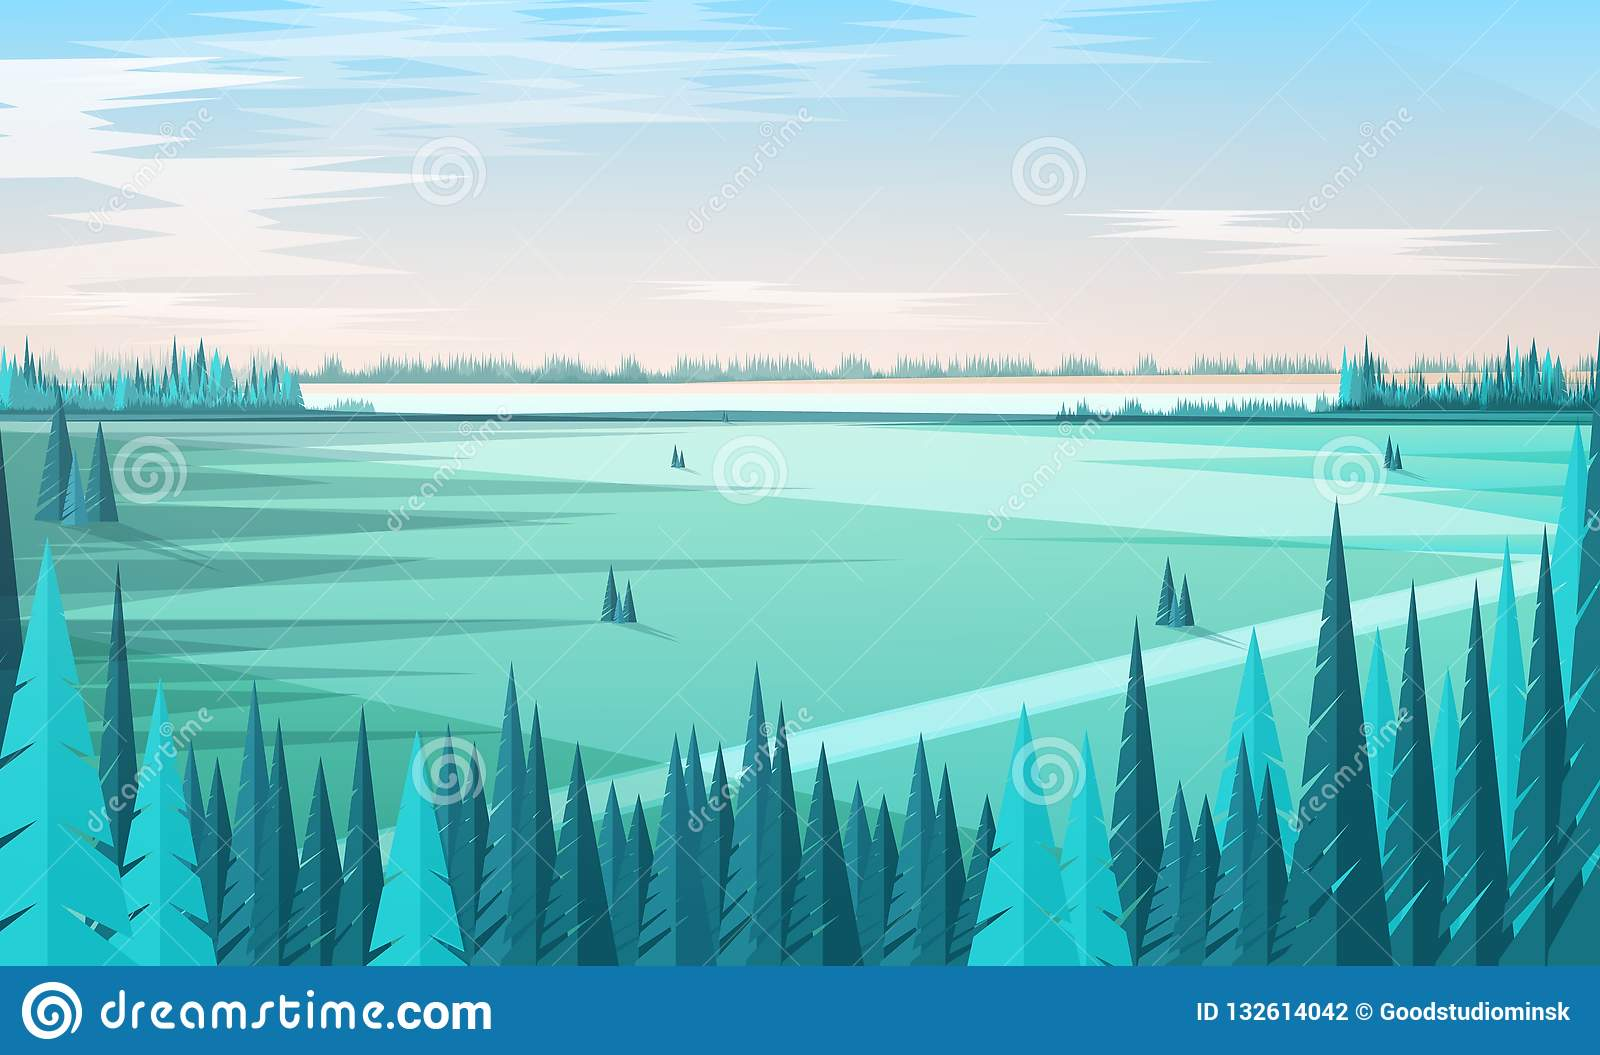 Banner template with natural scenery or landscape, green coniferous forest trees on foreground, large field, horizon